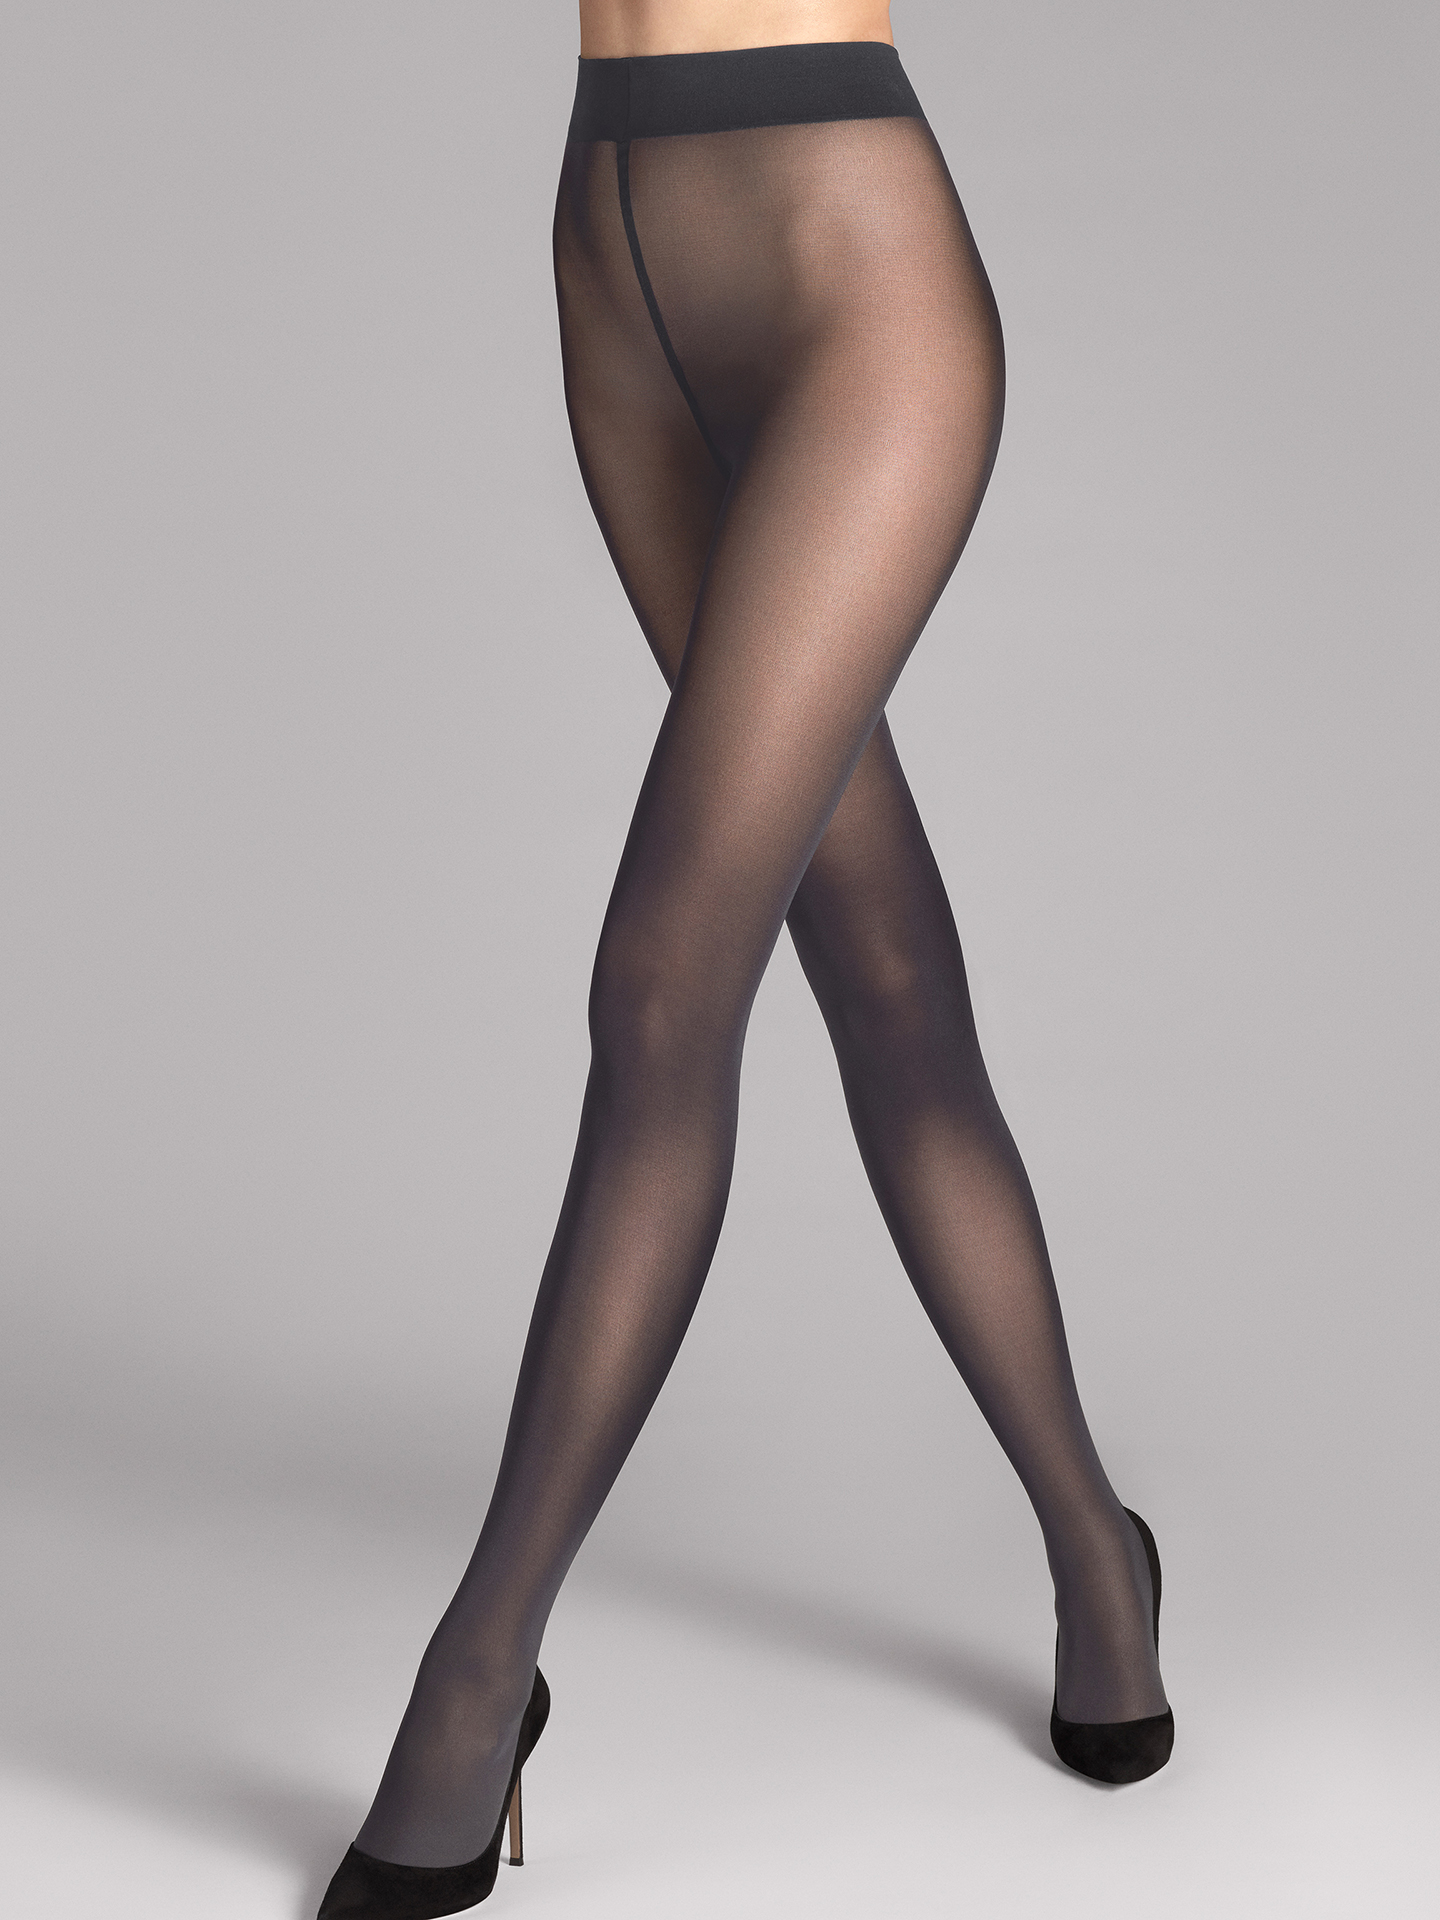 Pure 50 Tights - 7221 - L   Sportbekleidung > Sporthosen > Tights   Anthracite   Wolford